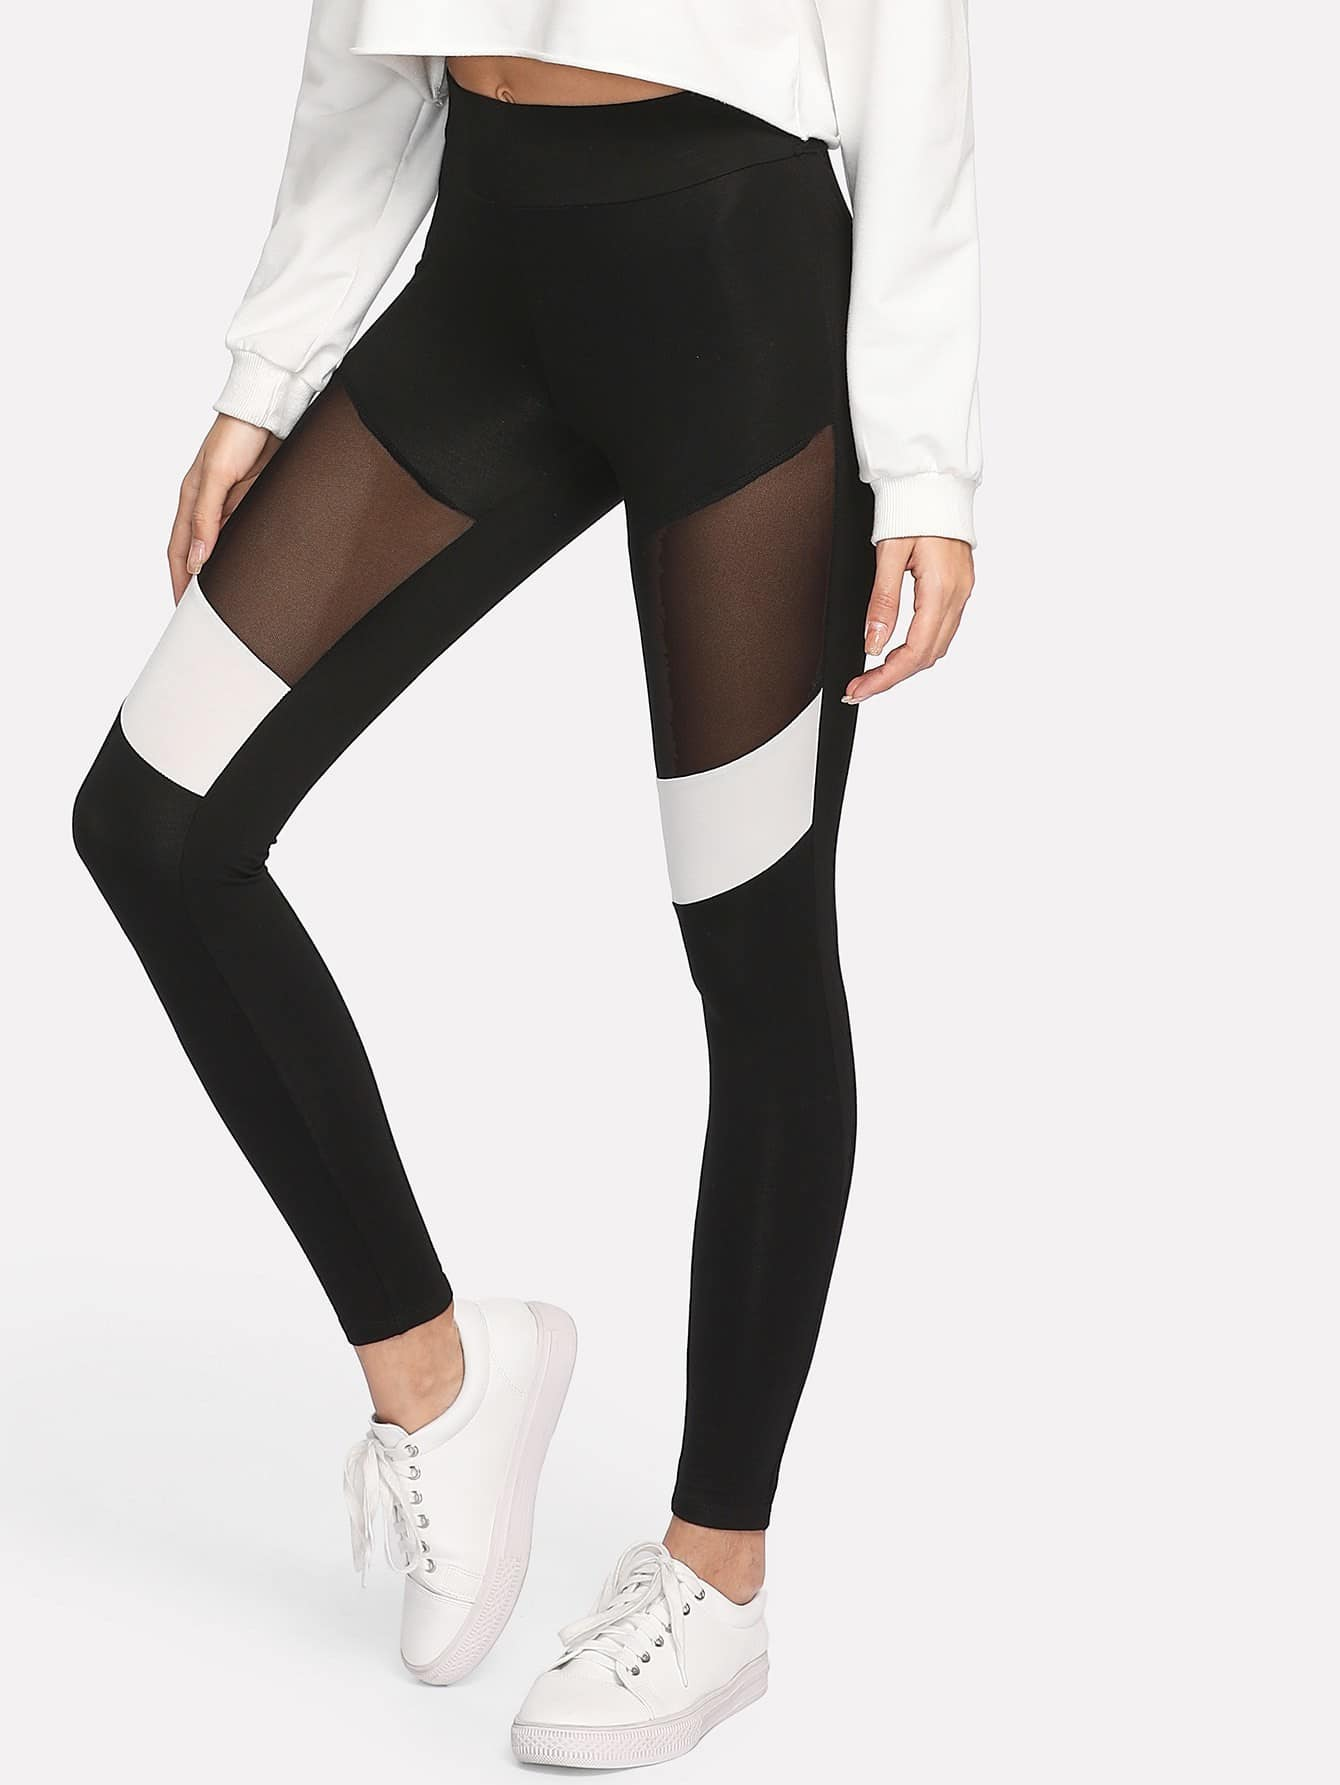 Two Tone Mesh Insert Leggings two tone heart